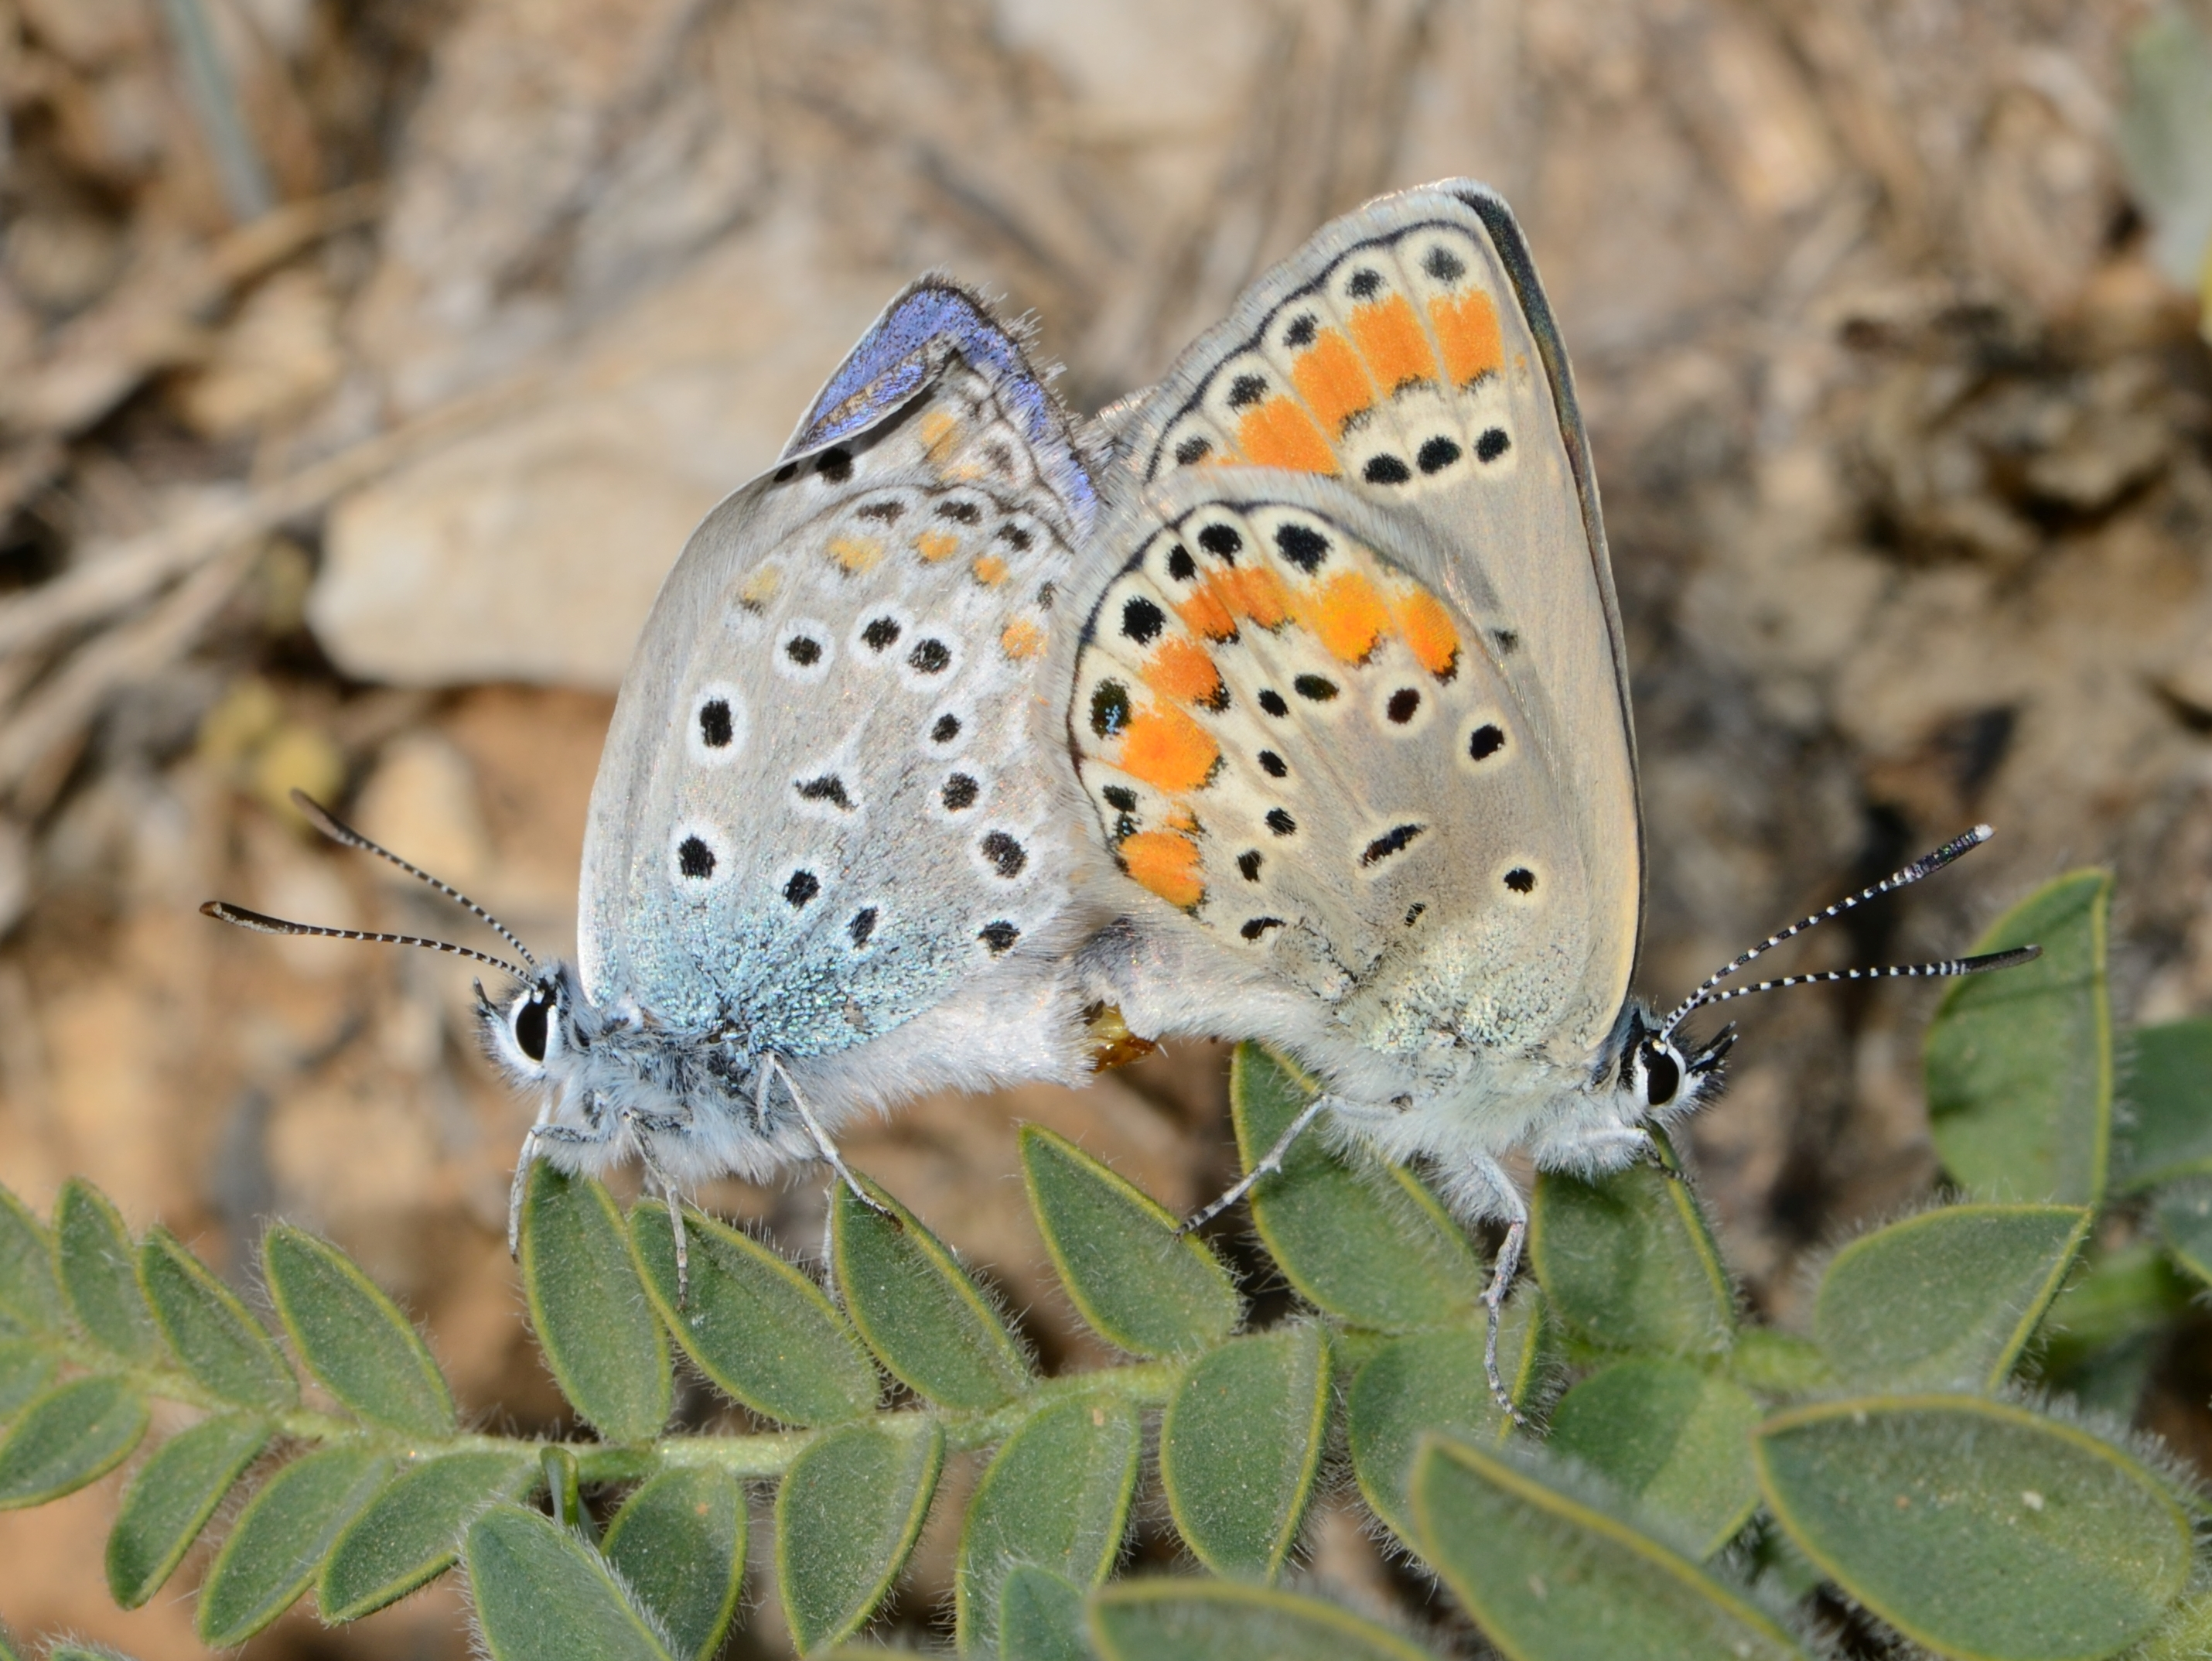 https://upload.wikimedia.org/wikipedia/commons/f/fe/Plebejus_pylaon_nichollae_copulation_1.jpg